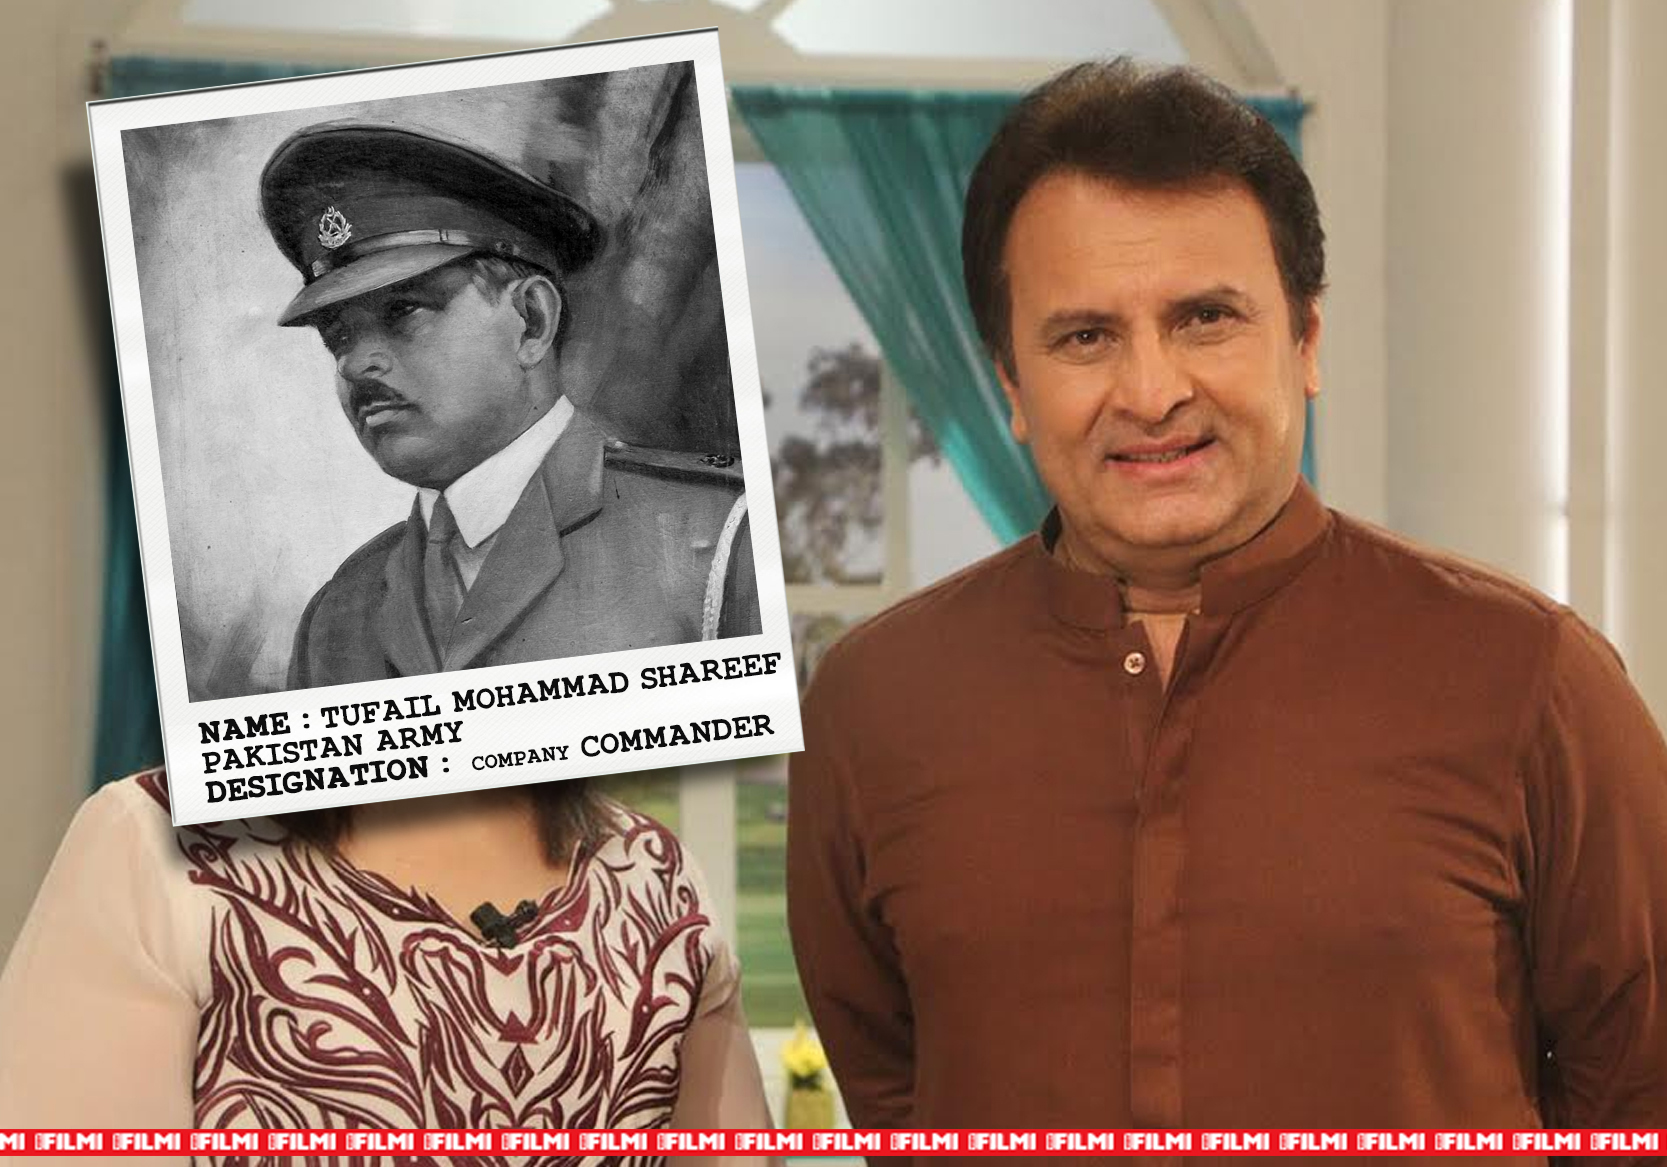 behroz subzwari as TUFAIL M SHARIF